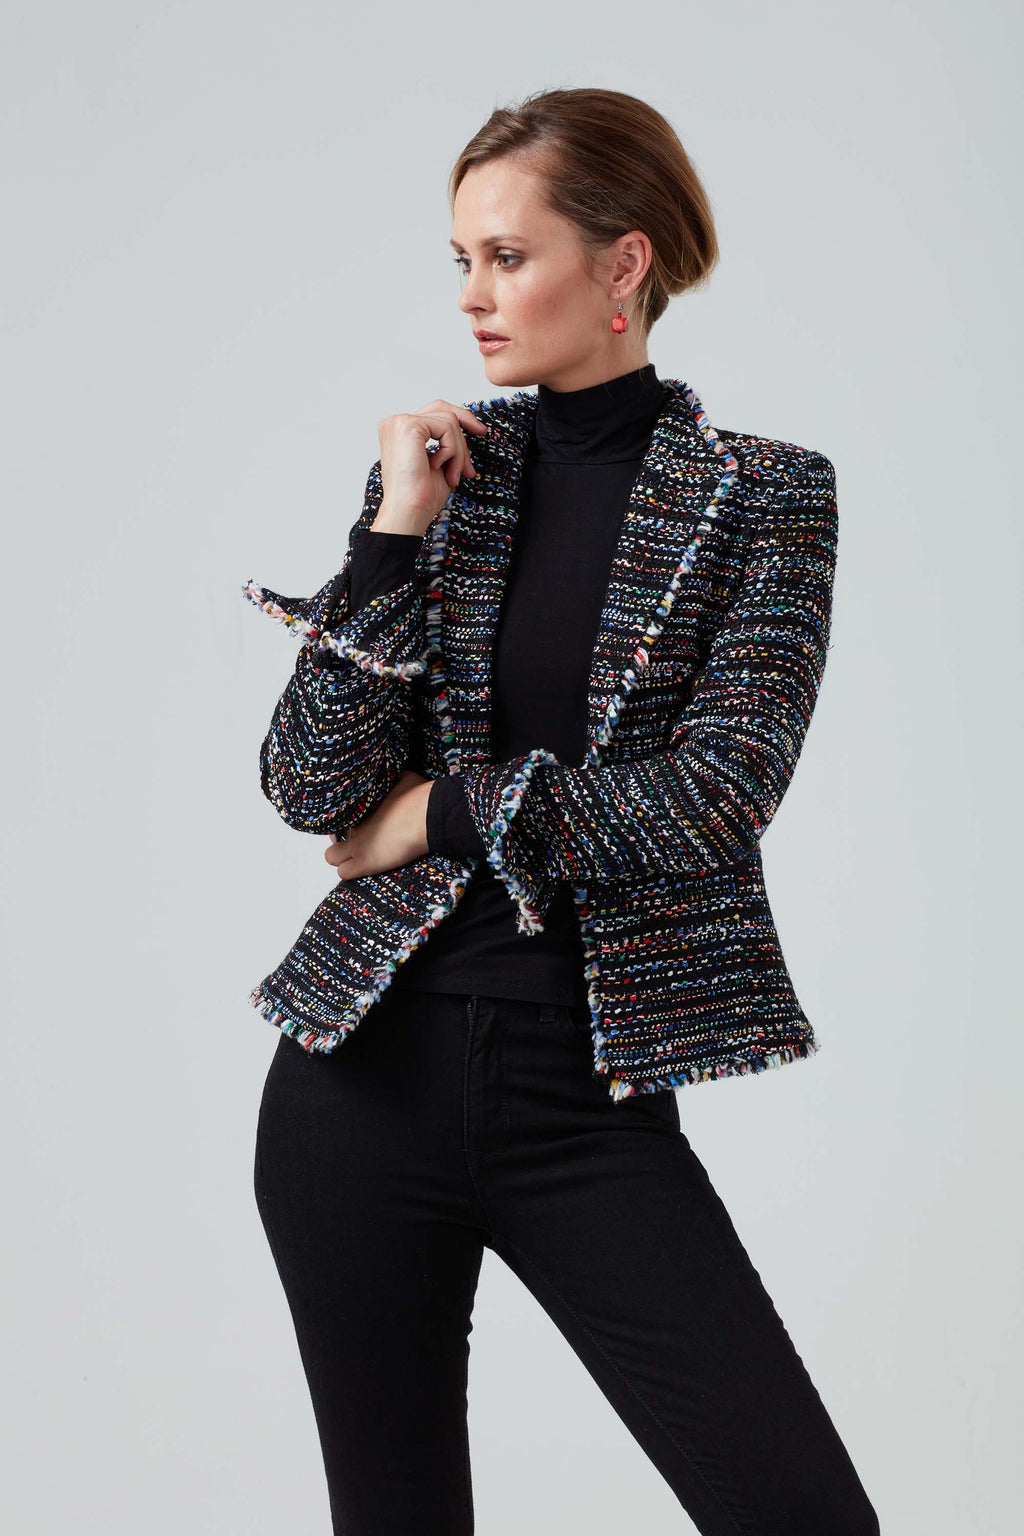 Black and multi - coloured fringe edged jacket  - Daphne